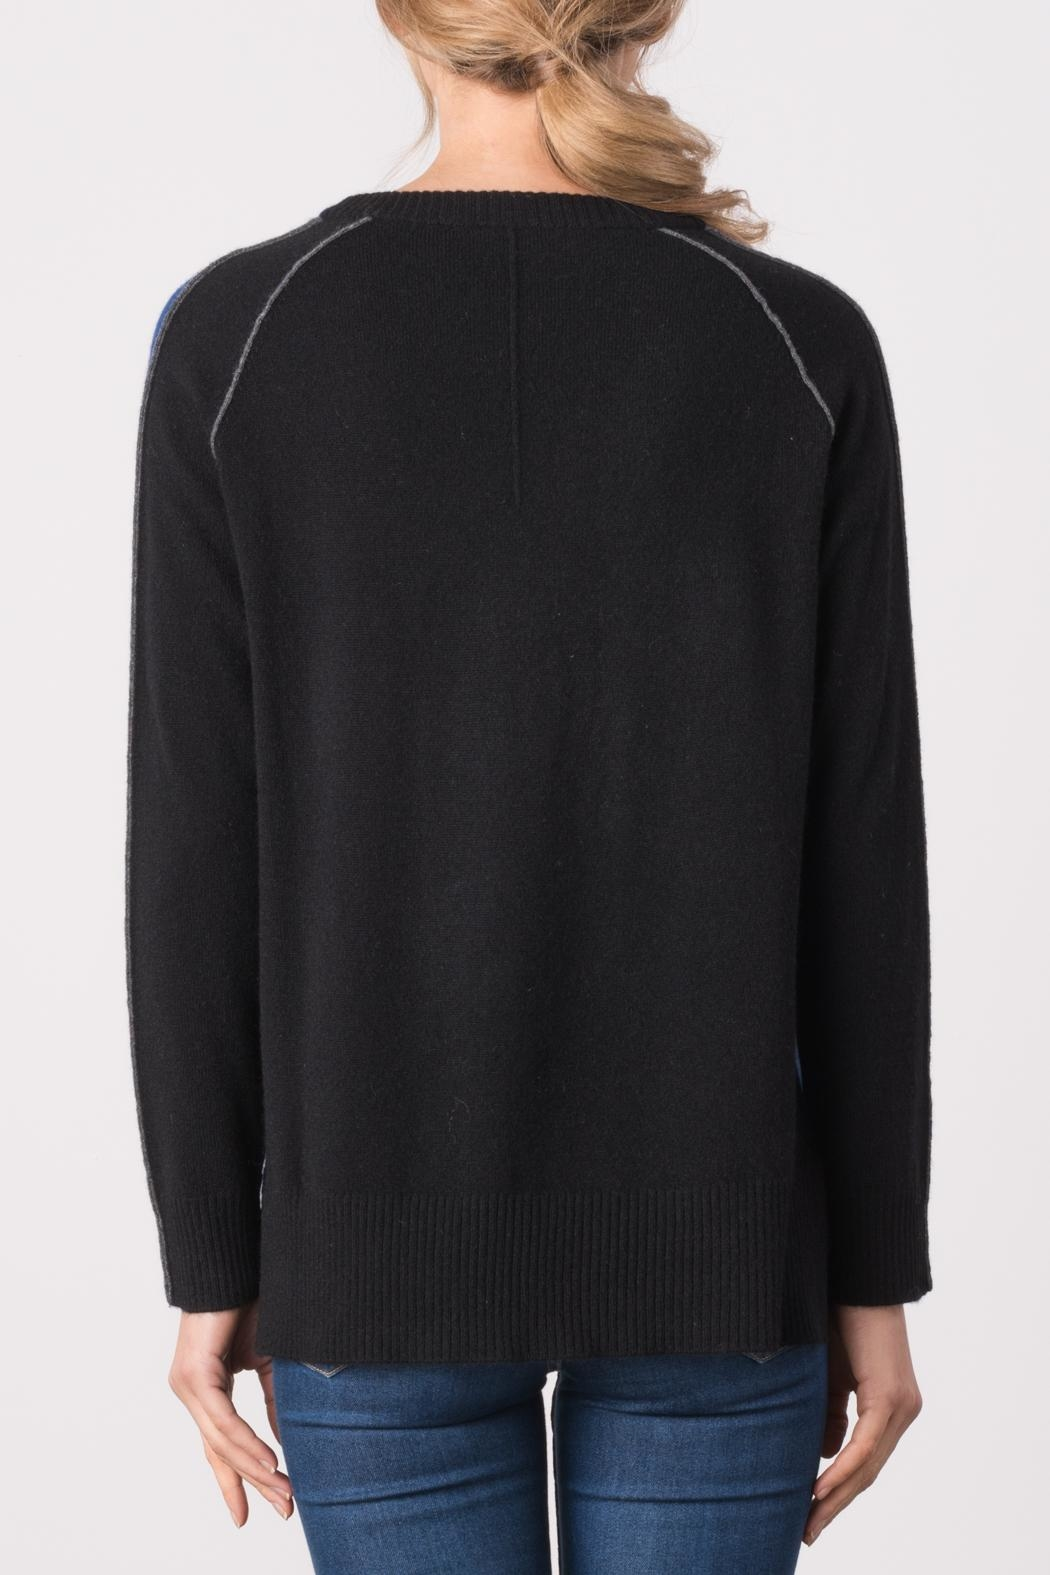 Margaret O'Leary Color Block Sweater - Side Cropped Image